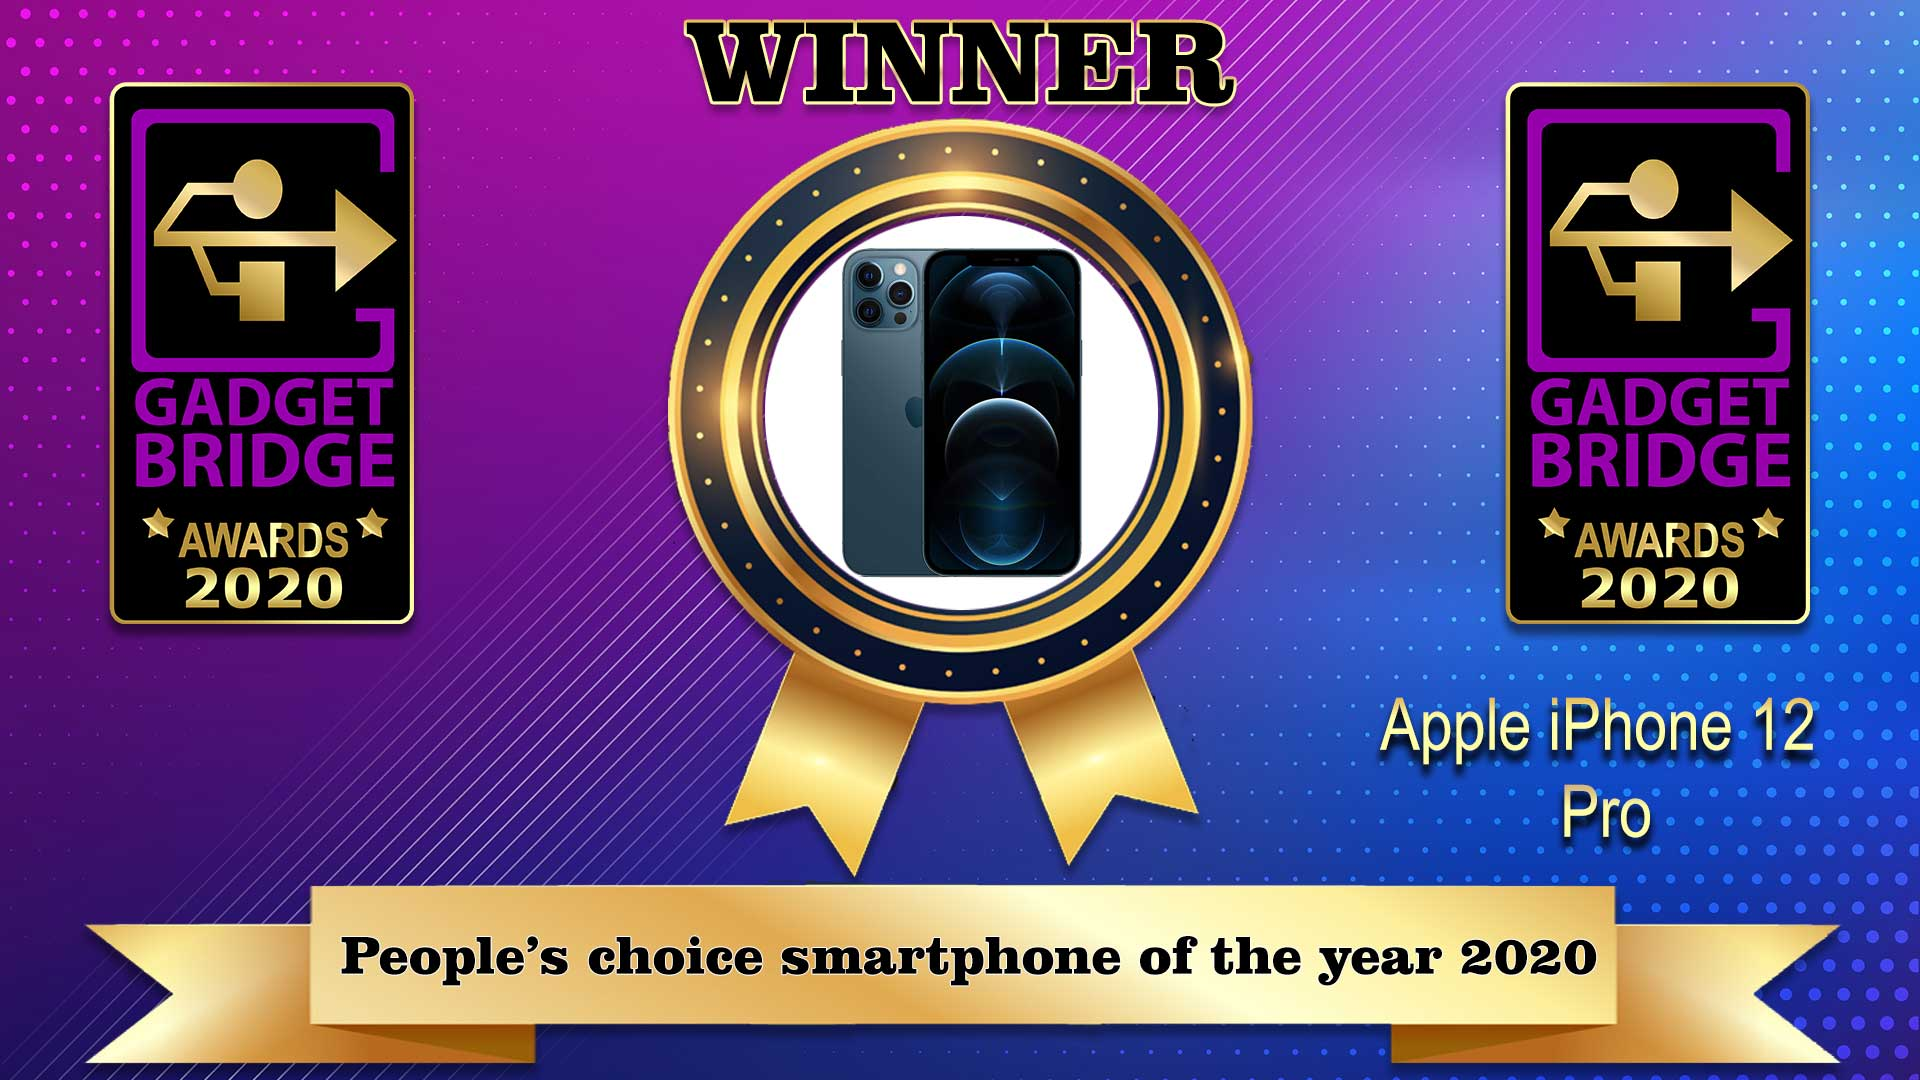 Gadget Bridge Awards People's-choice-smartphone-of-the-year-2020